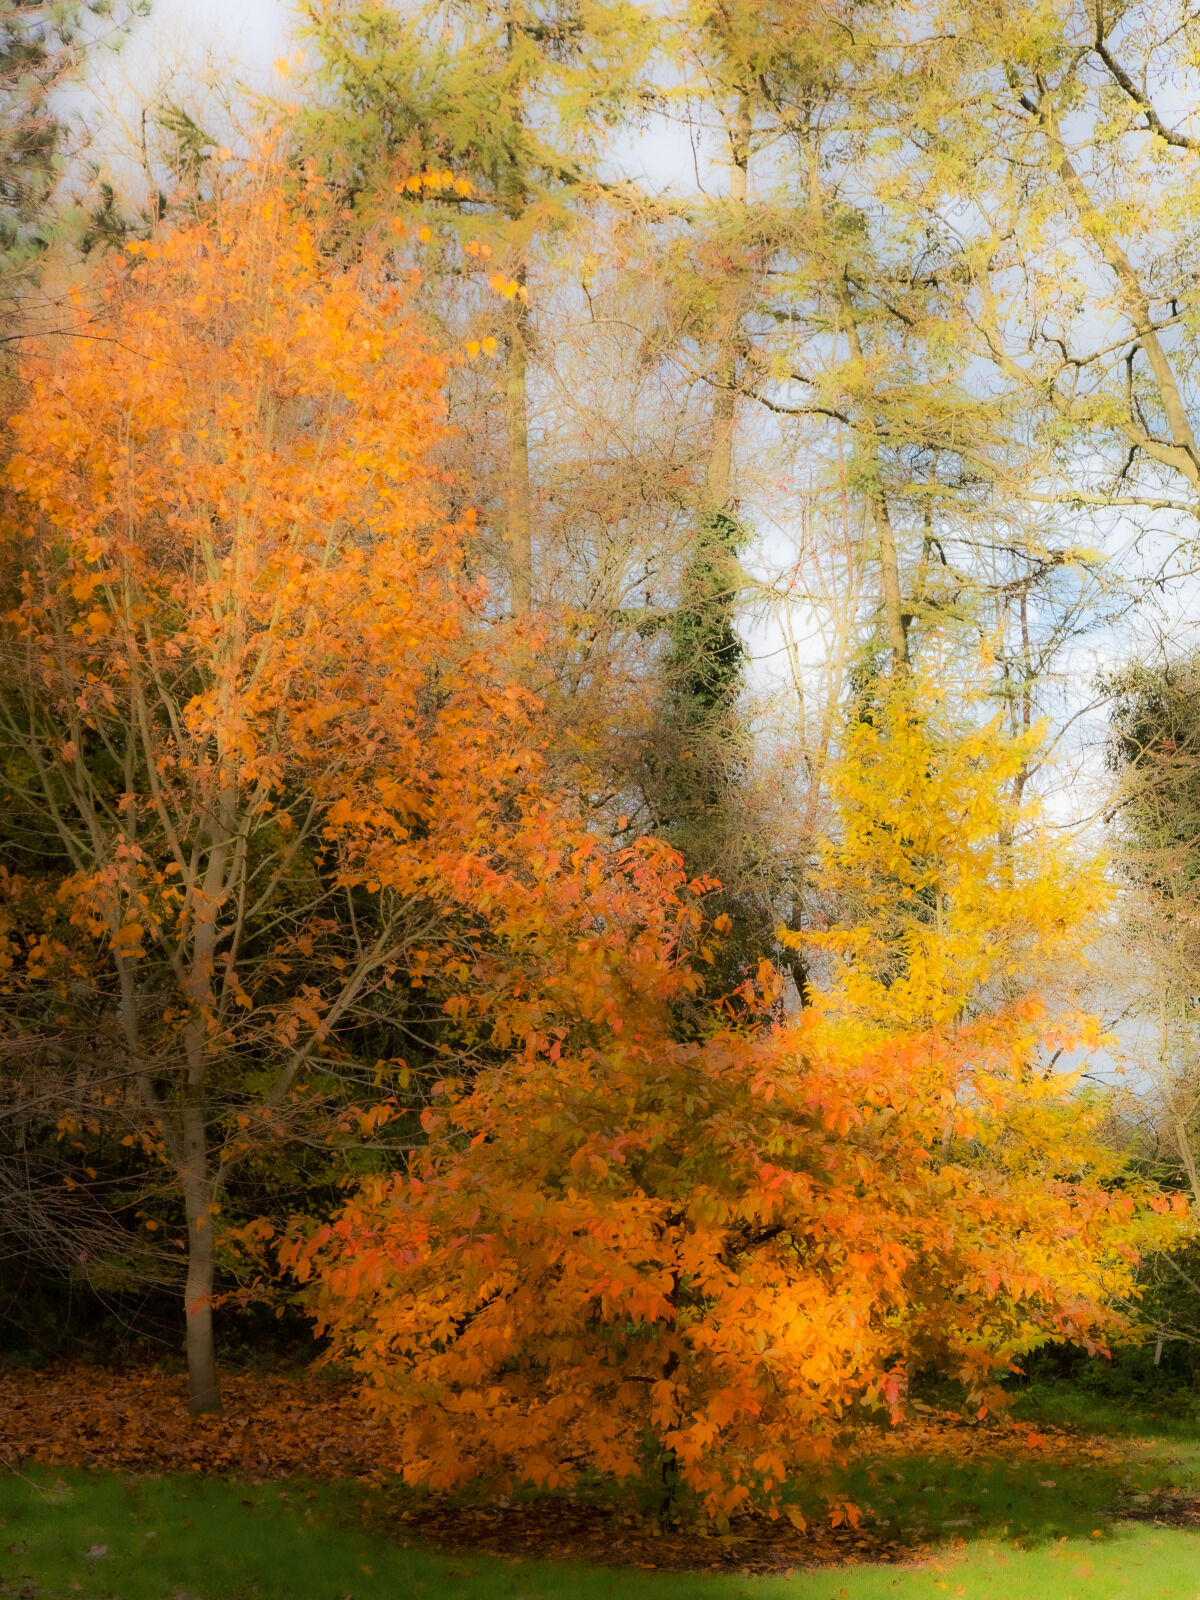 Group B - Commended - Autumn Impressions - David Walters